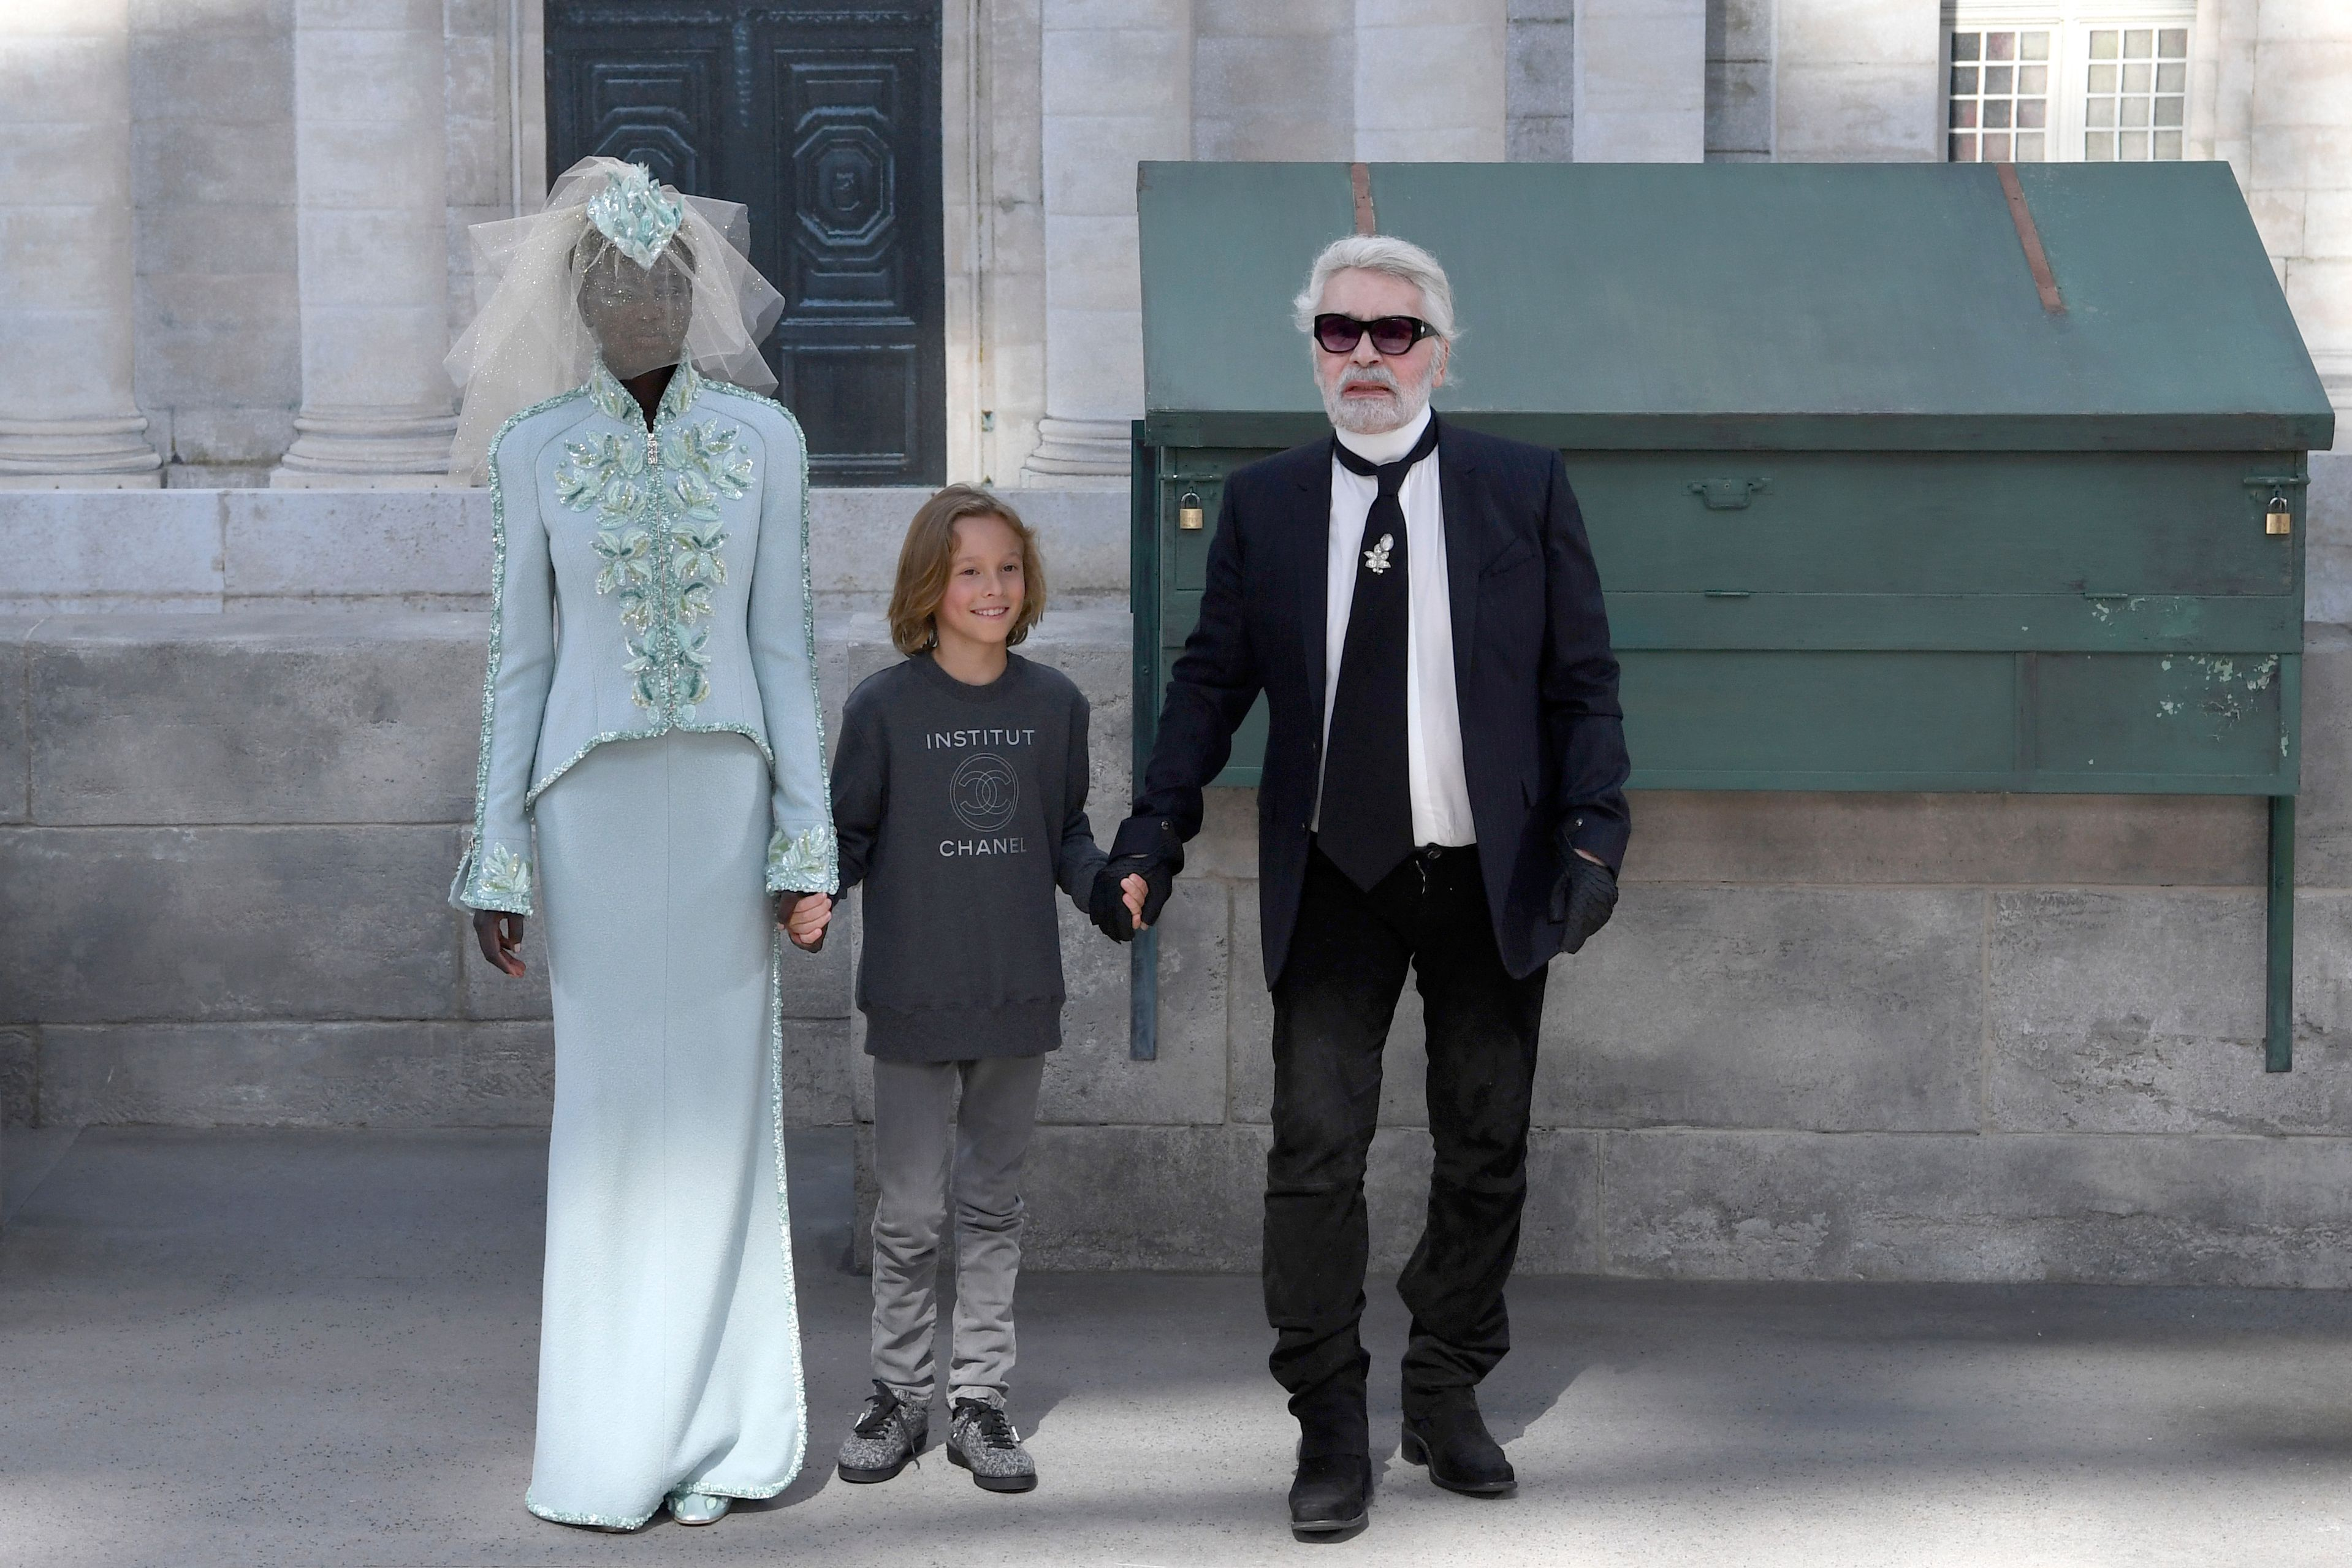 4b3fb813e7d Karl Lagerfeld Takes Us Into the World of Chanel in New Netflix Docuseries  7 Days Out